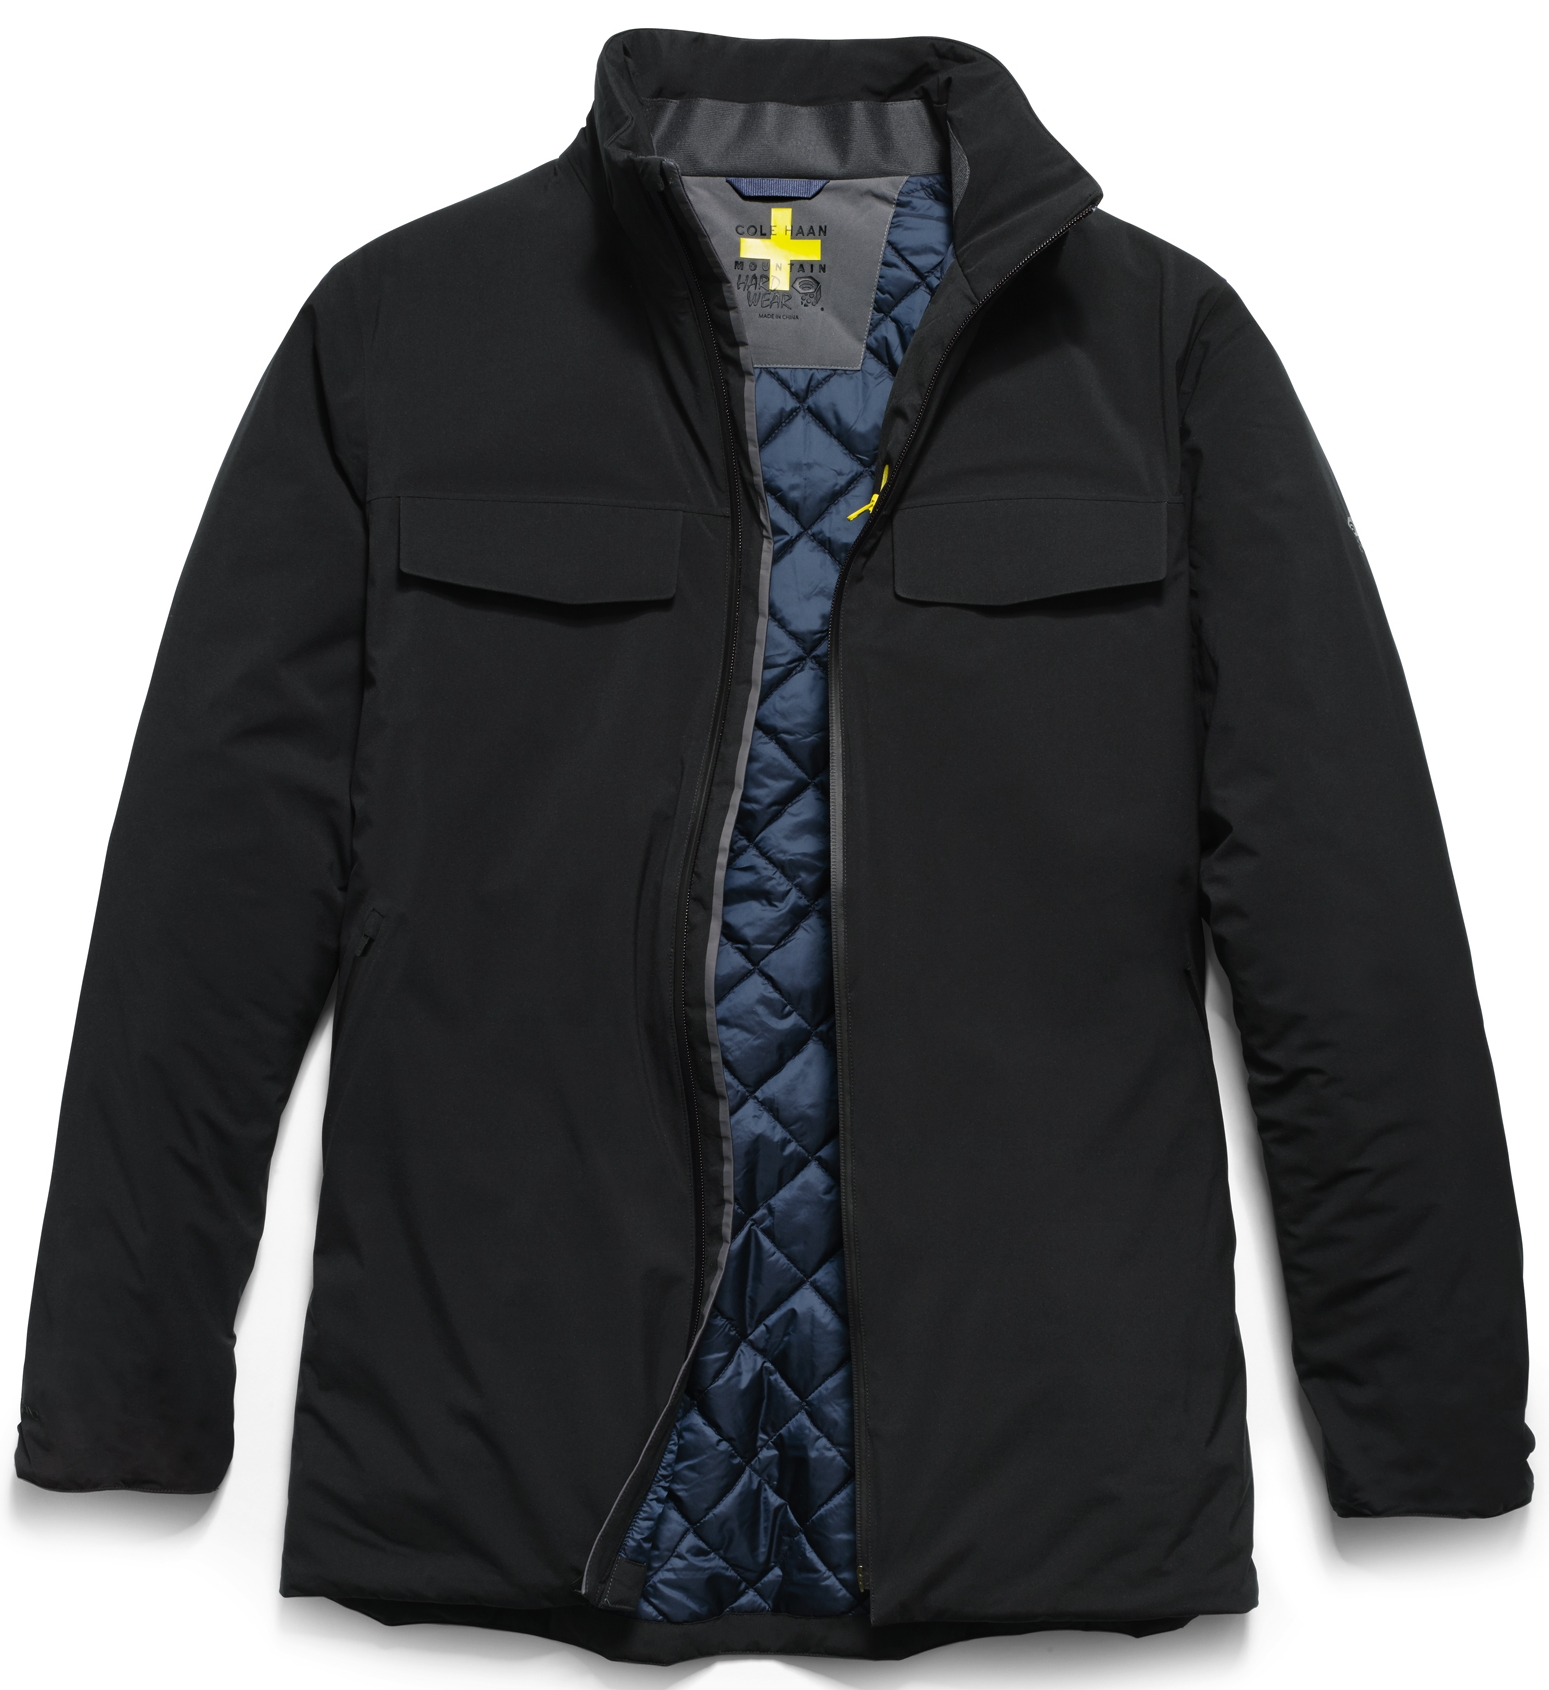 Cole Haan ZerøGrand Motoring Coat, $450